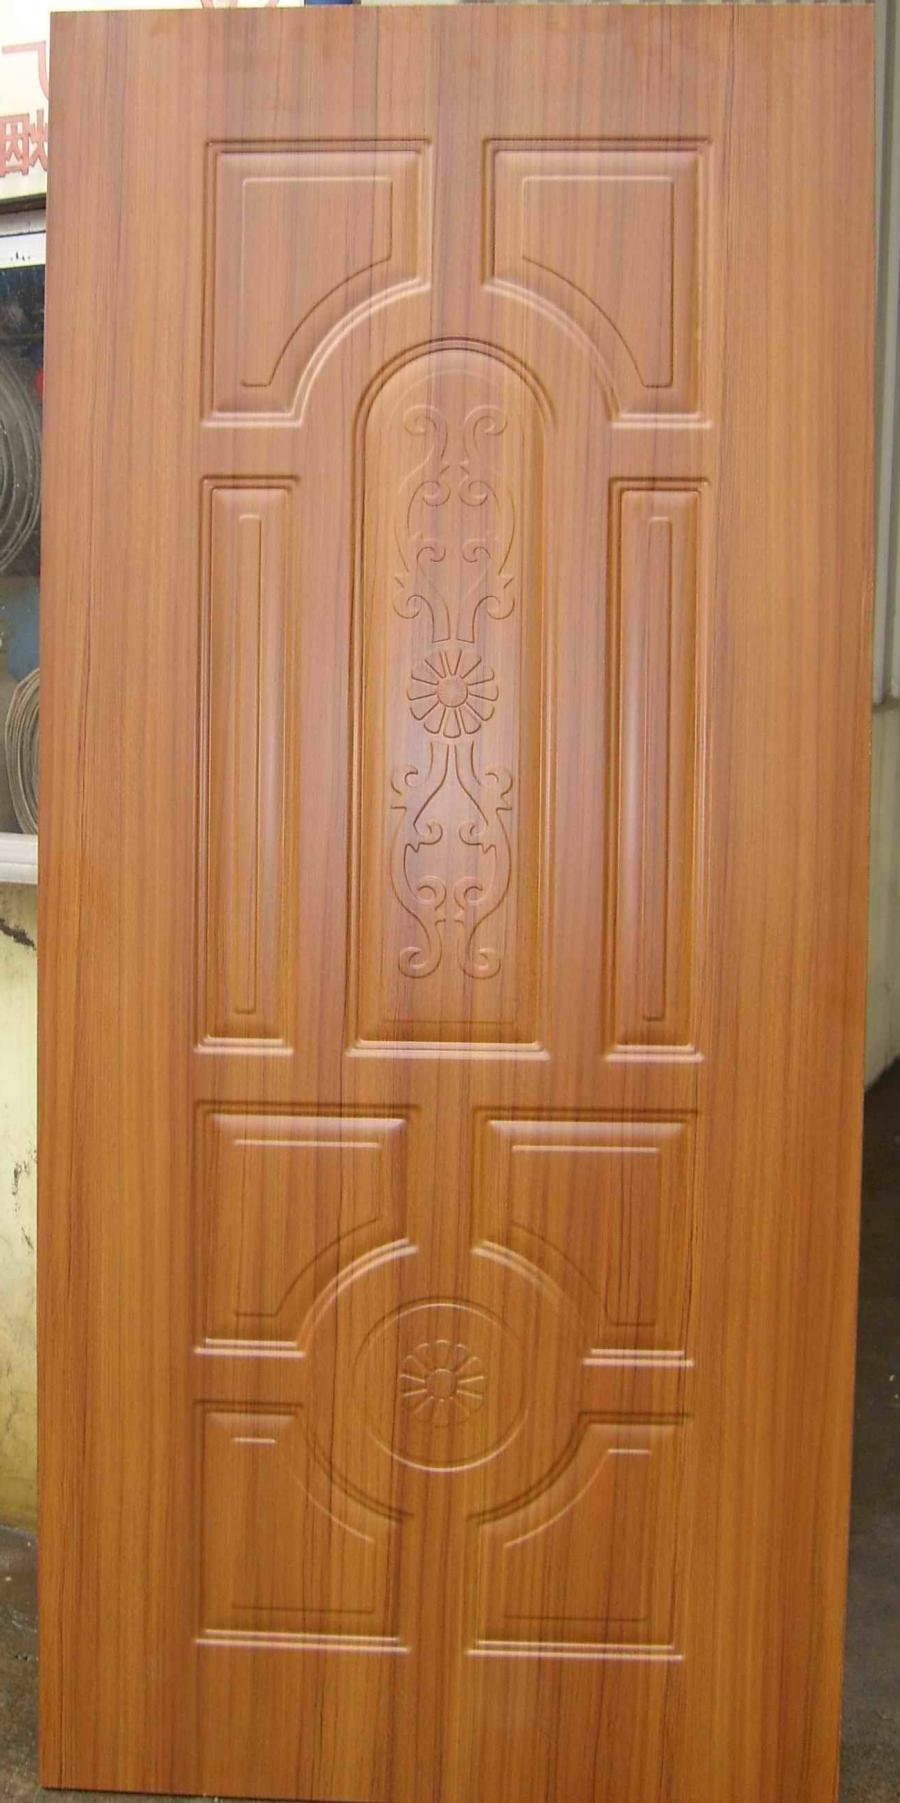 Door designs sri lanka photo gallery for Plywood door design